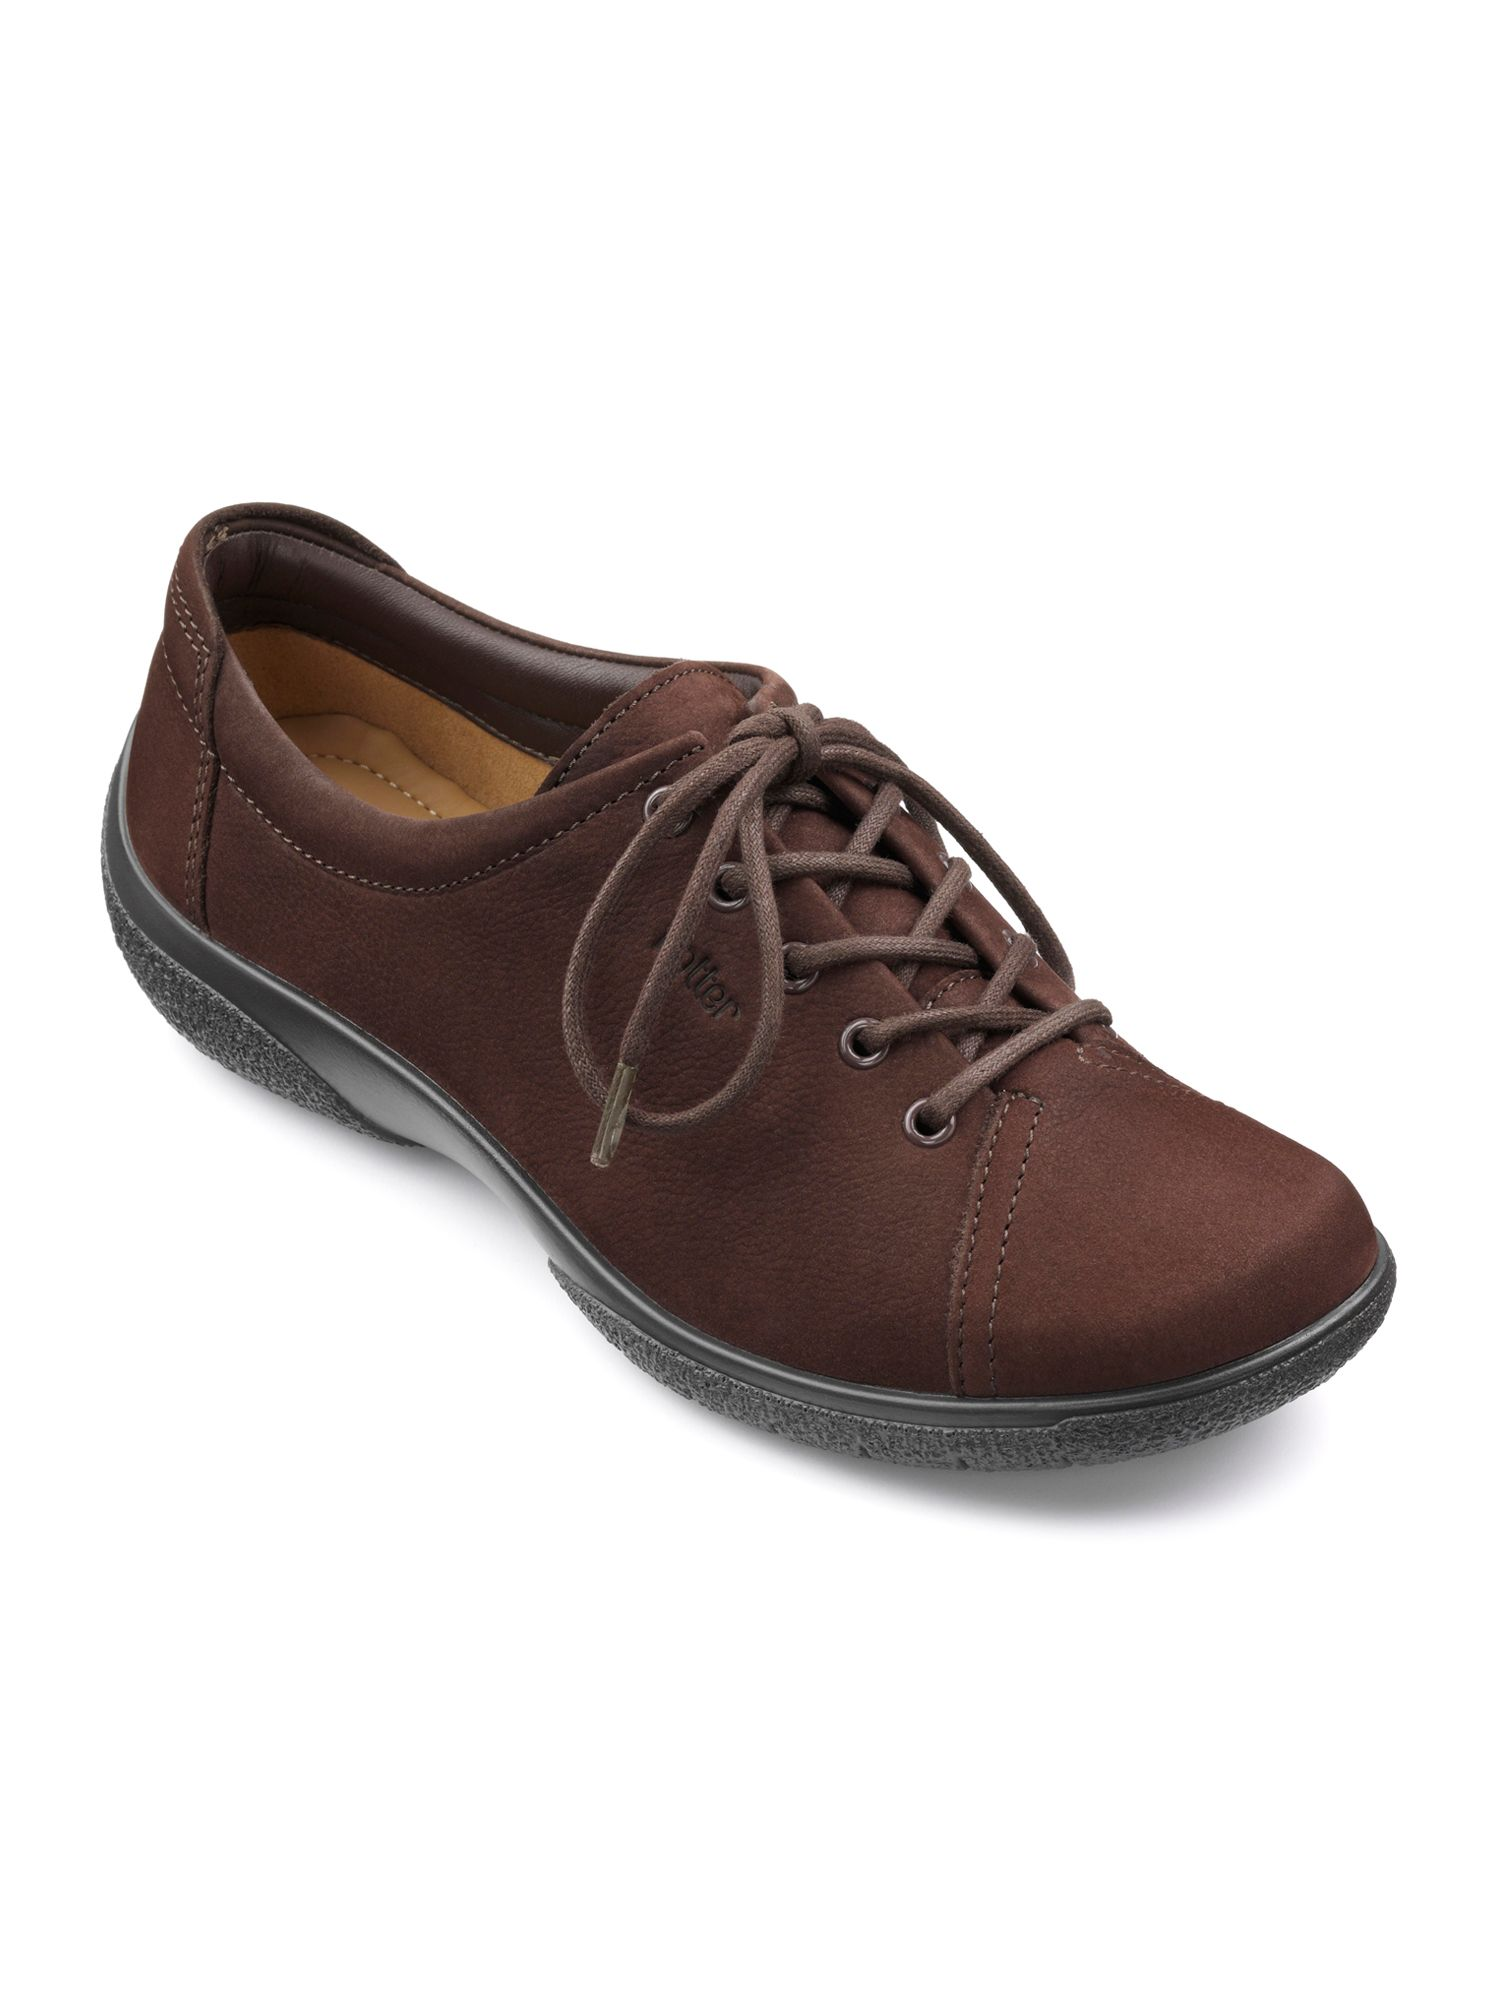 Hotter Dew Original Extra Wide Shoes, Chocolate